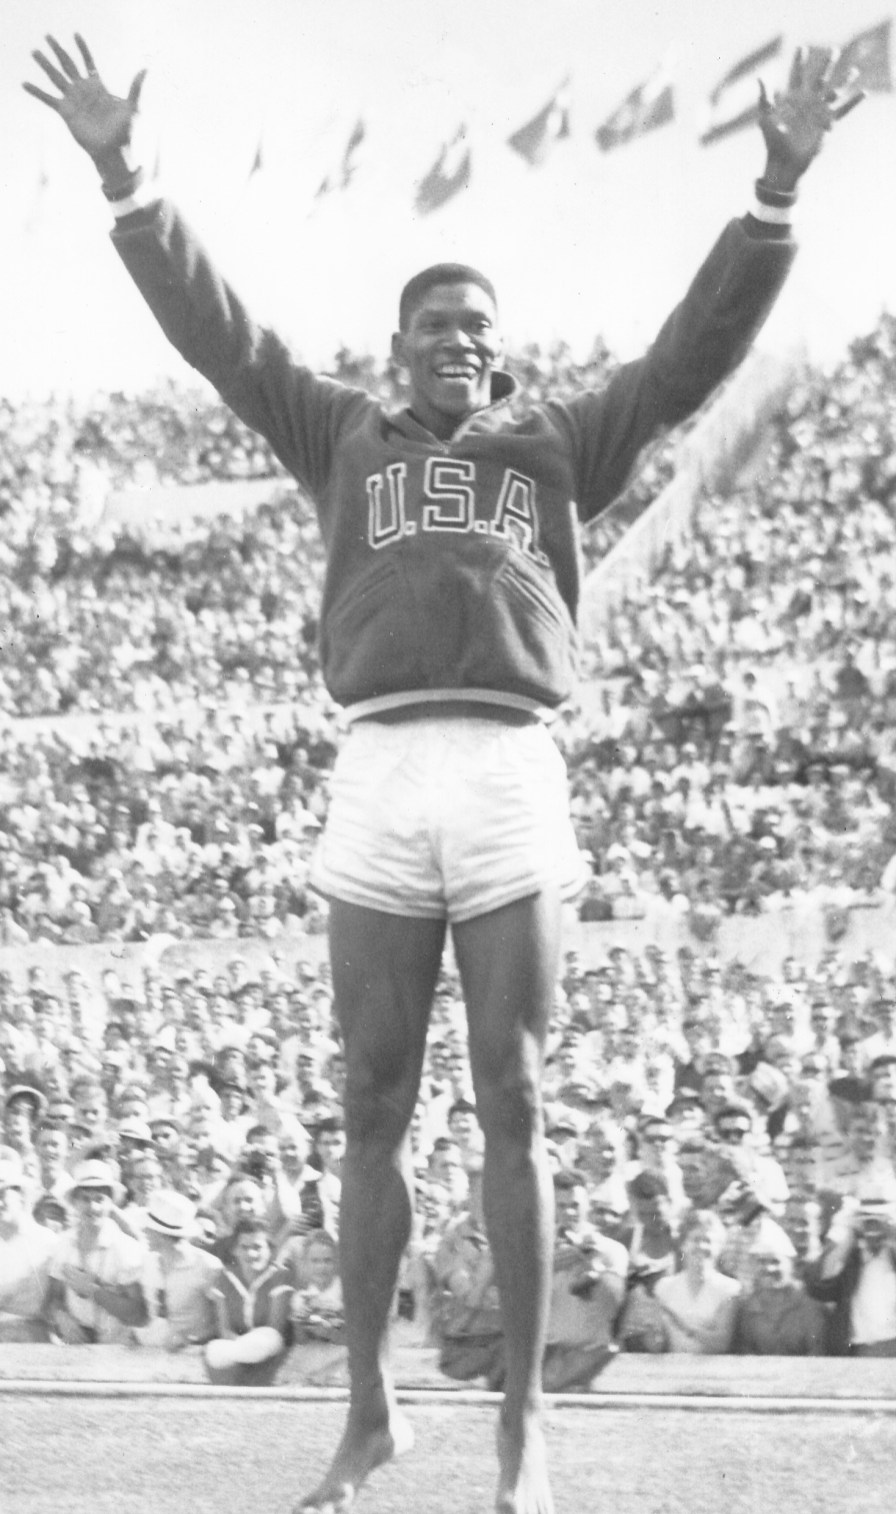 Otis Davis during the 1960 Olympic games. (Tuntematon, Wikipedia)